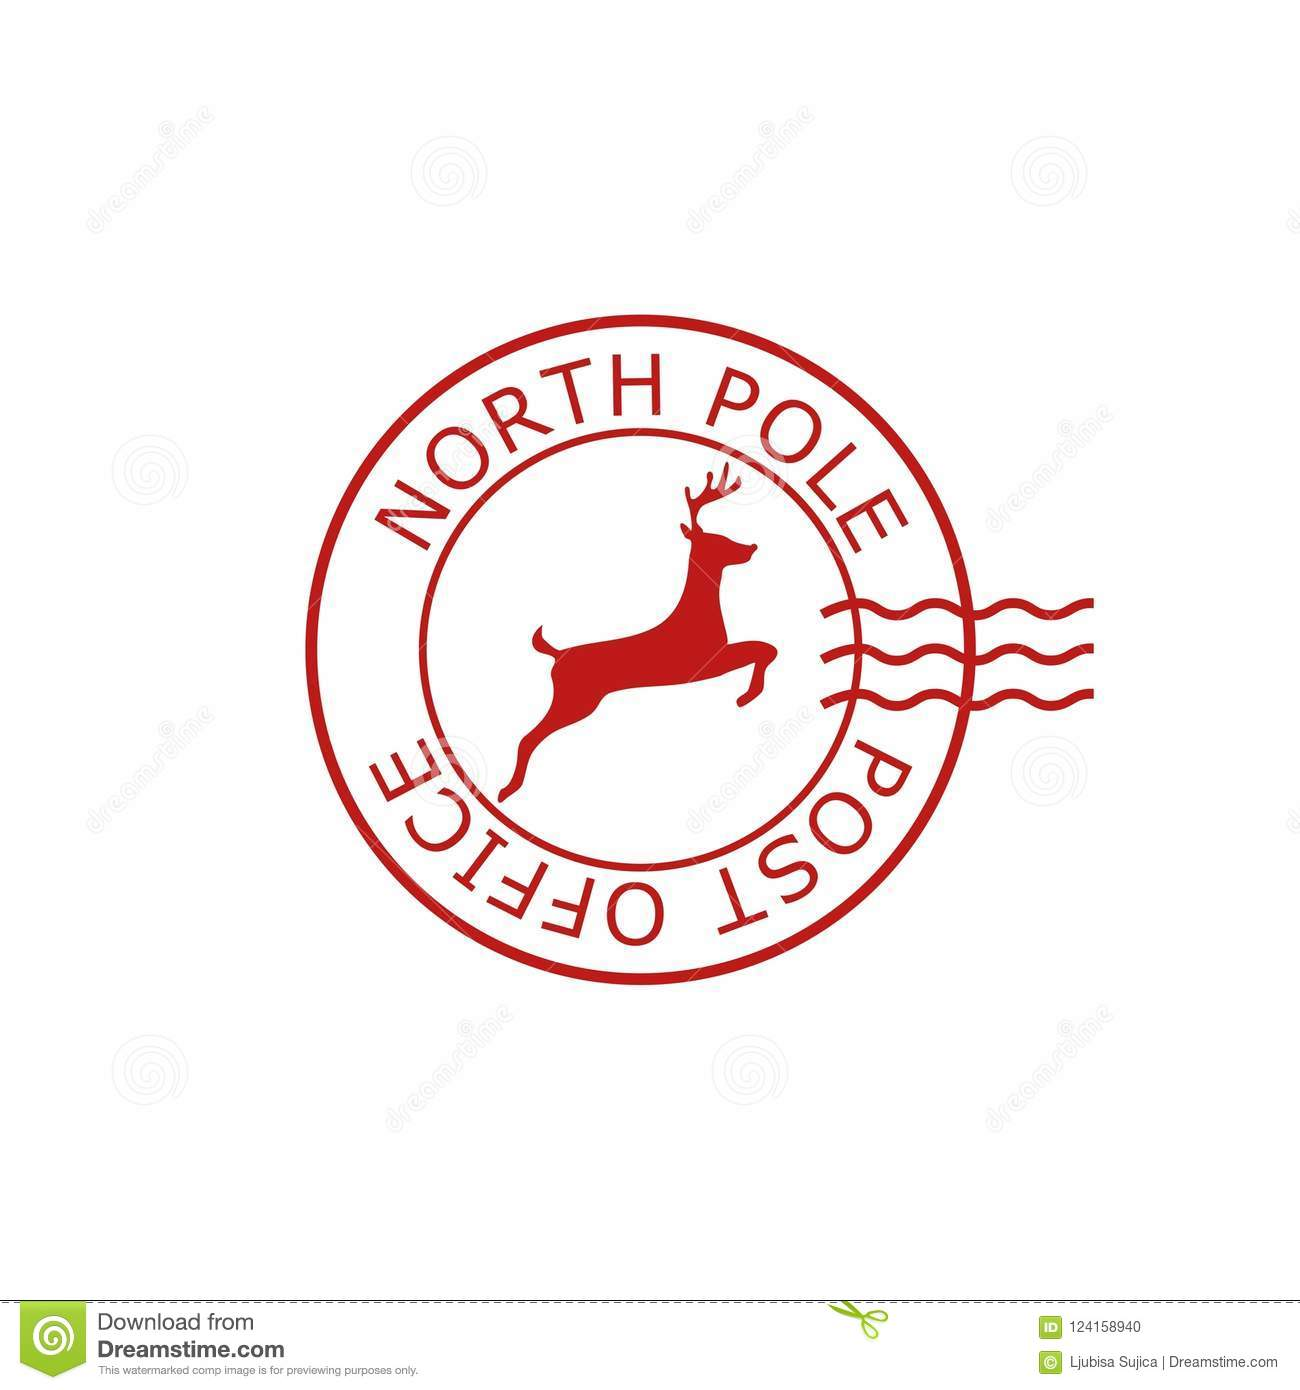 North Pole, Post Office Sign Or Stamp Stock Vector.